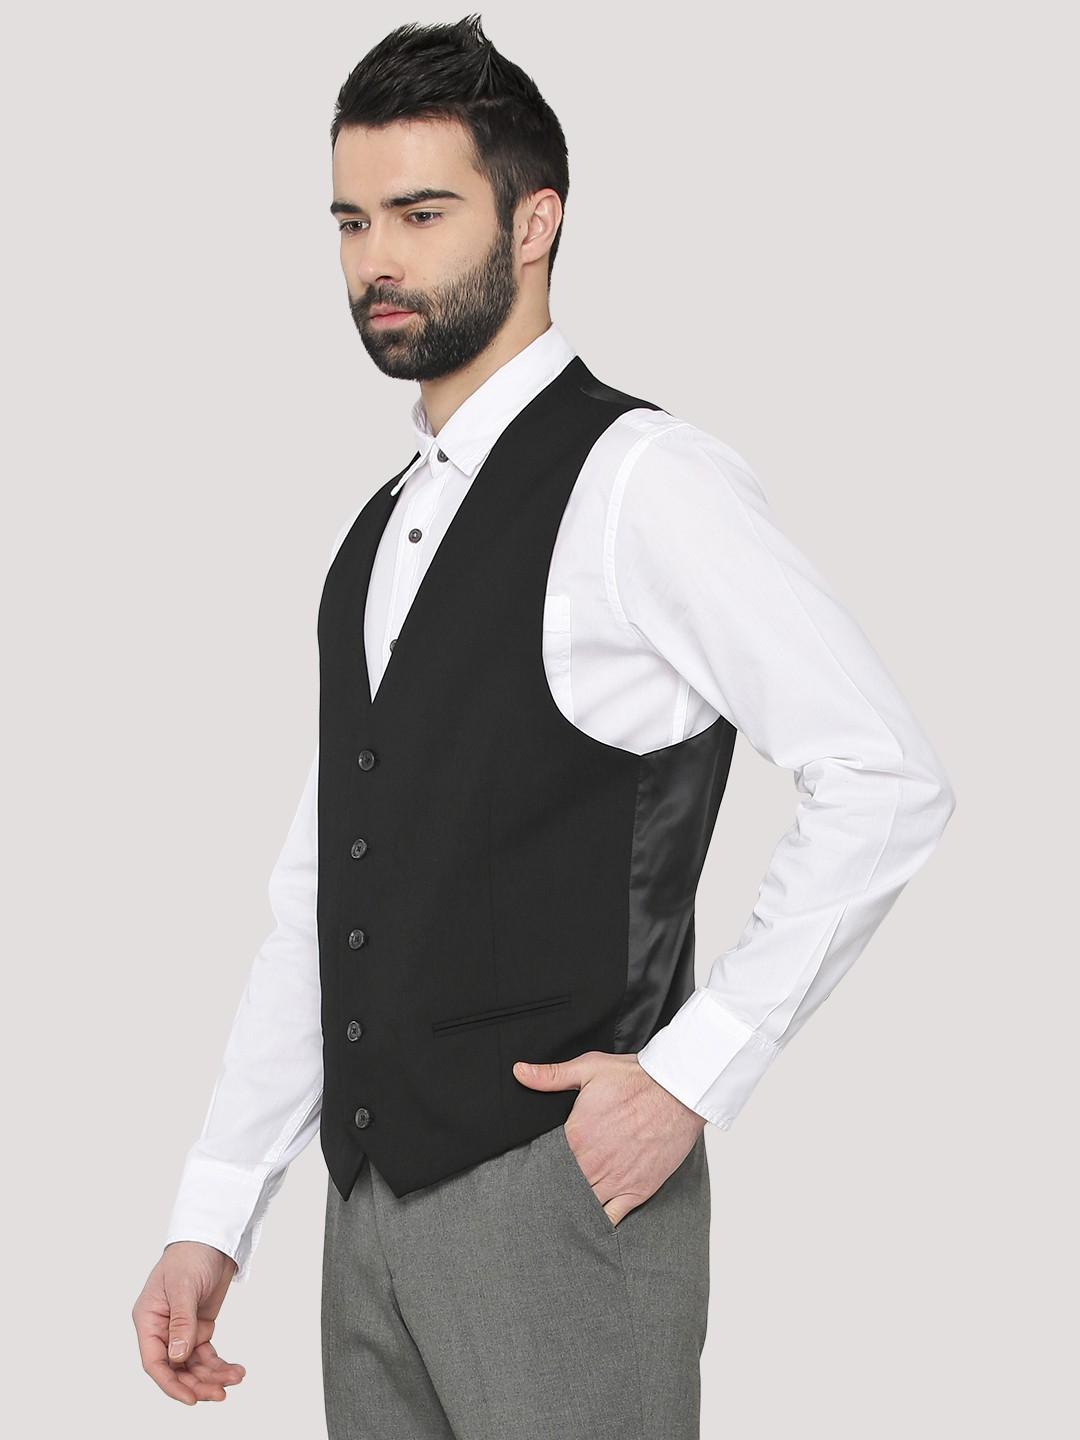 laest technology really cheap exceptional range of colors Buy New Look Black Smart Suit Waistcoat for Men Online in India